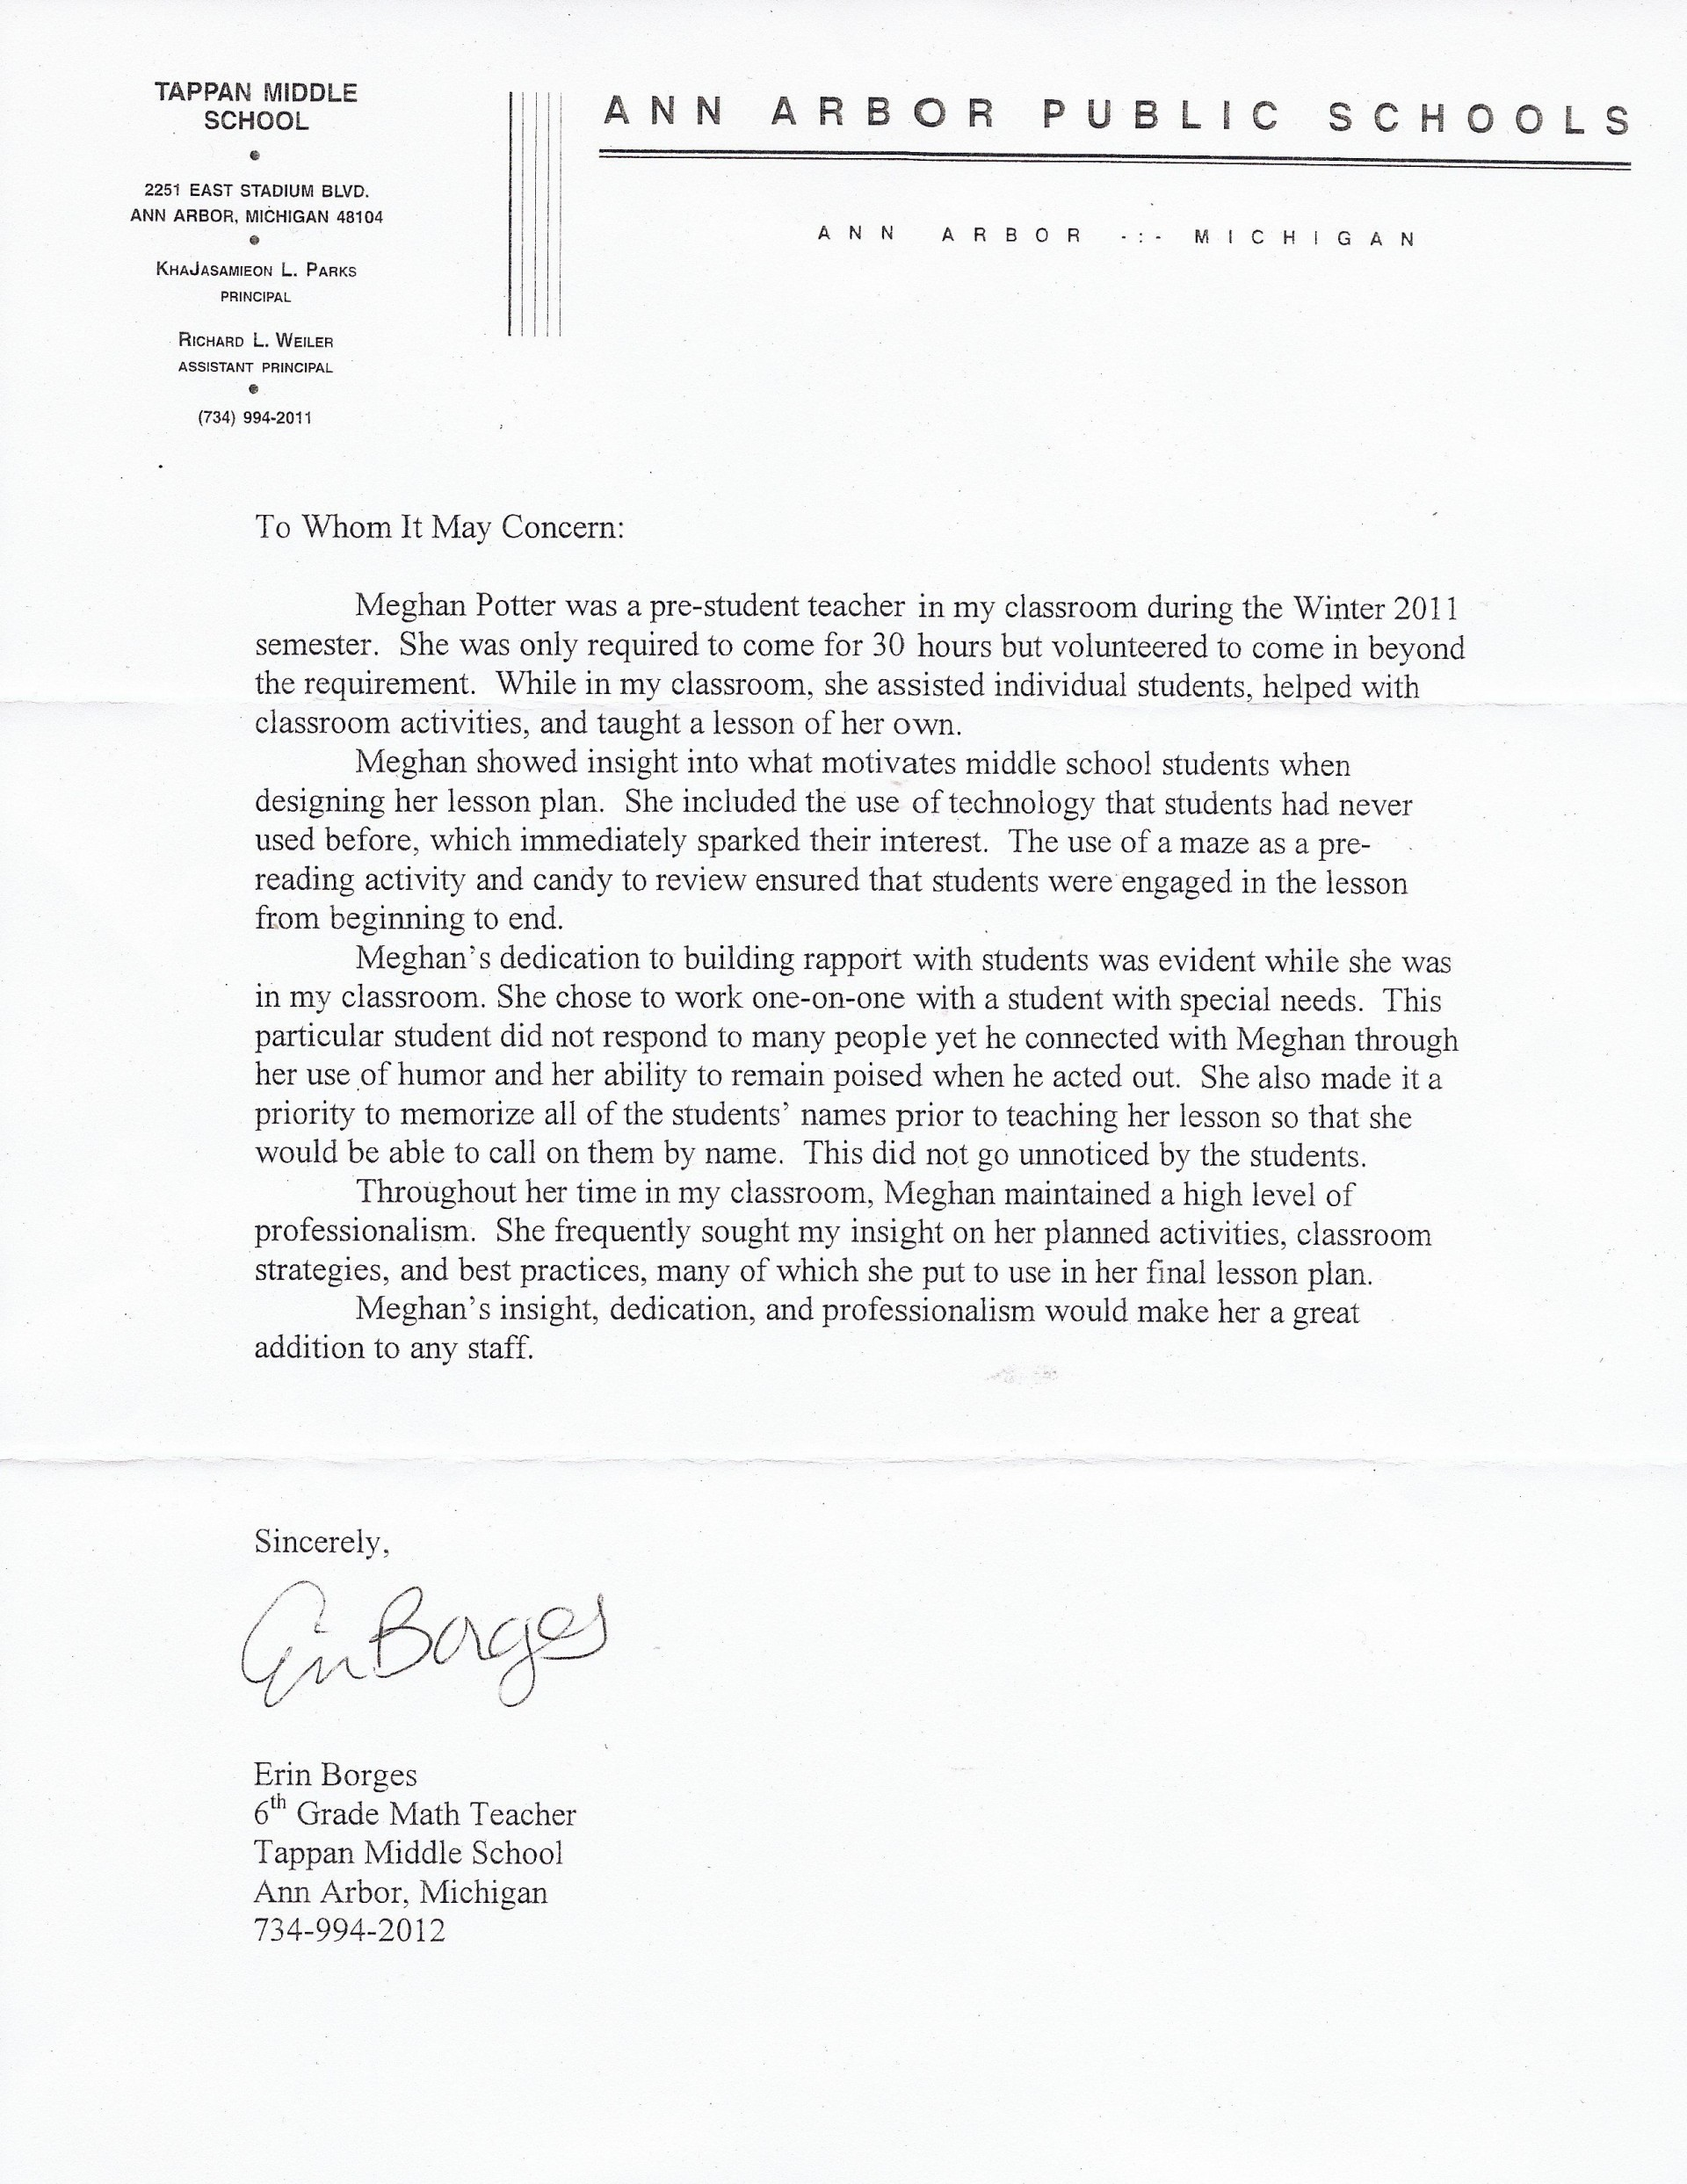 008 Incredible Letter Of Recommendation For Student Teacher From Cooperating Template Inspiration 1920